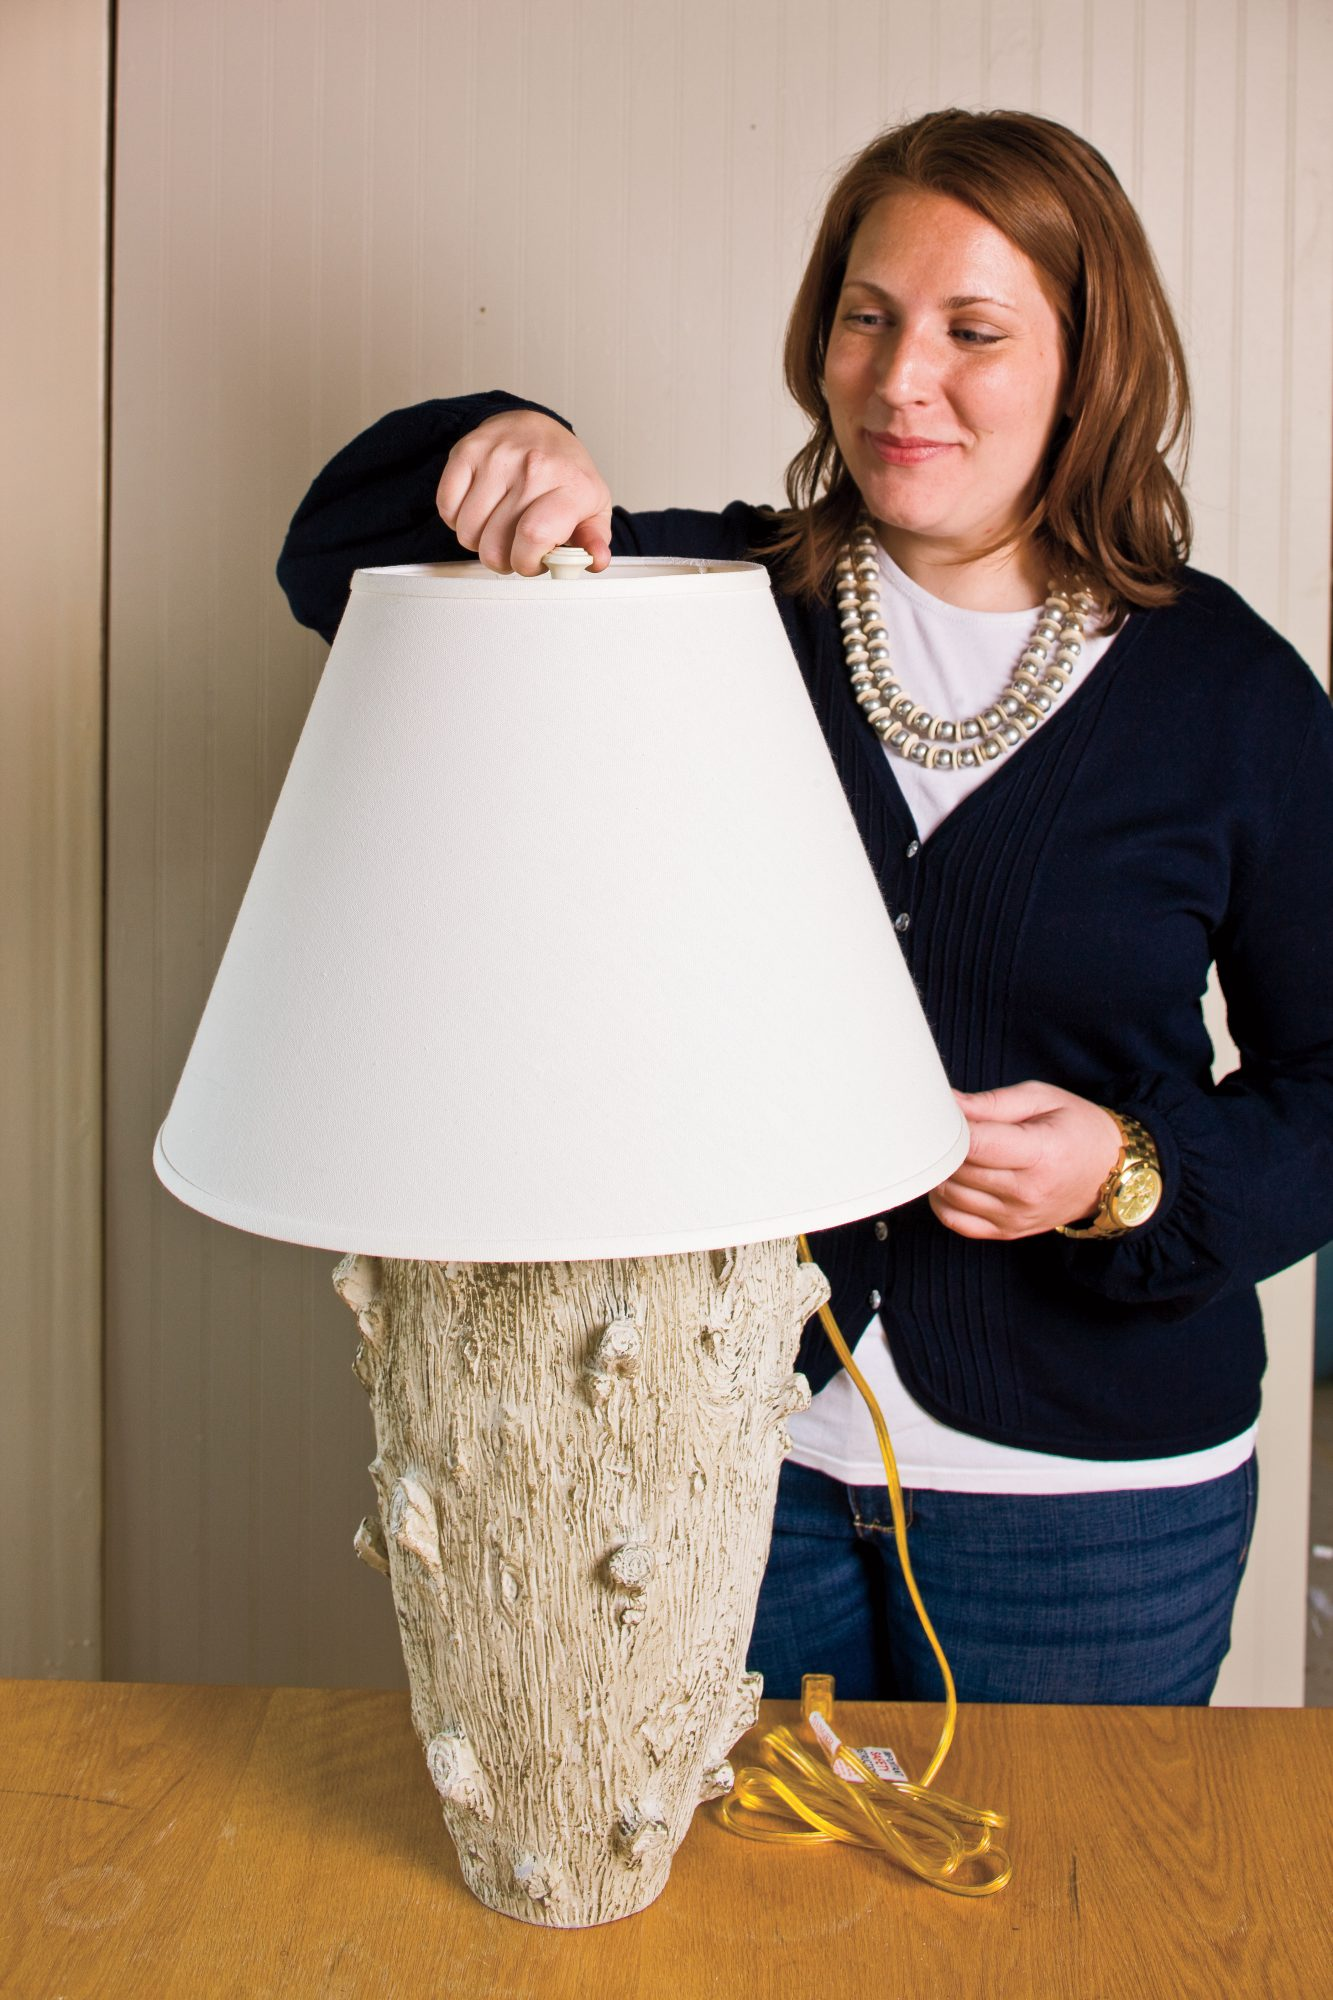 Do It Yourself Table Lamp Craft: Finish the Look